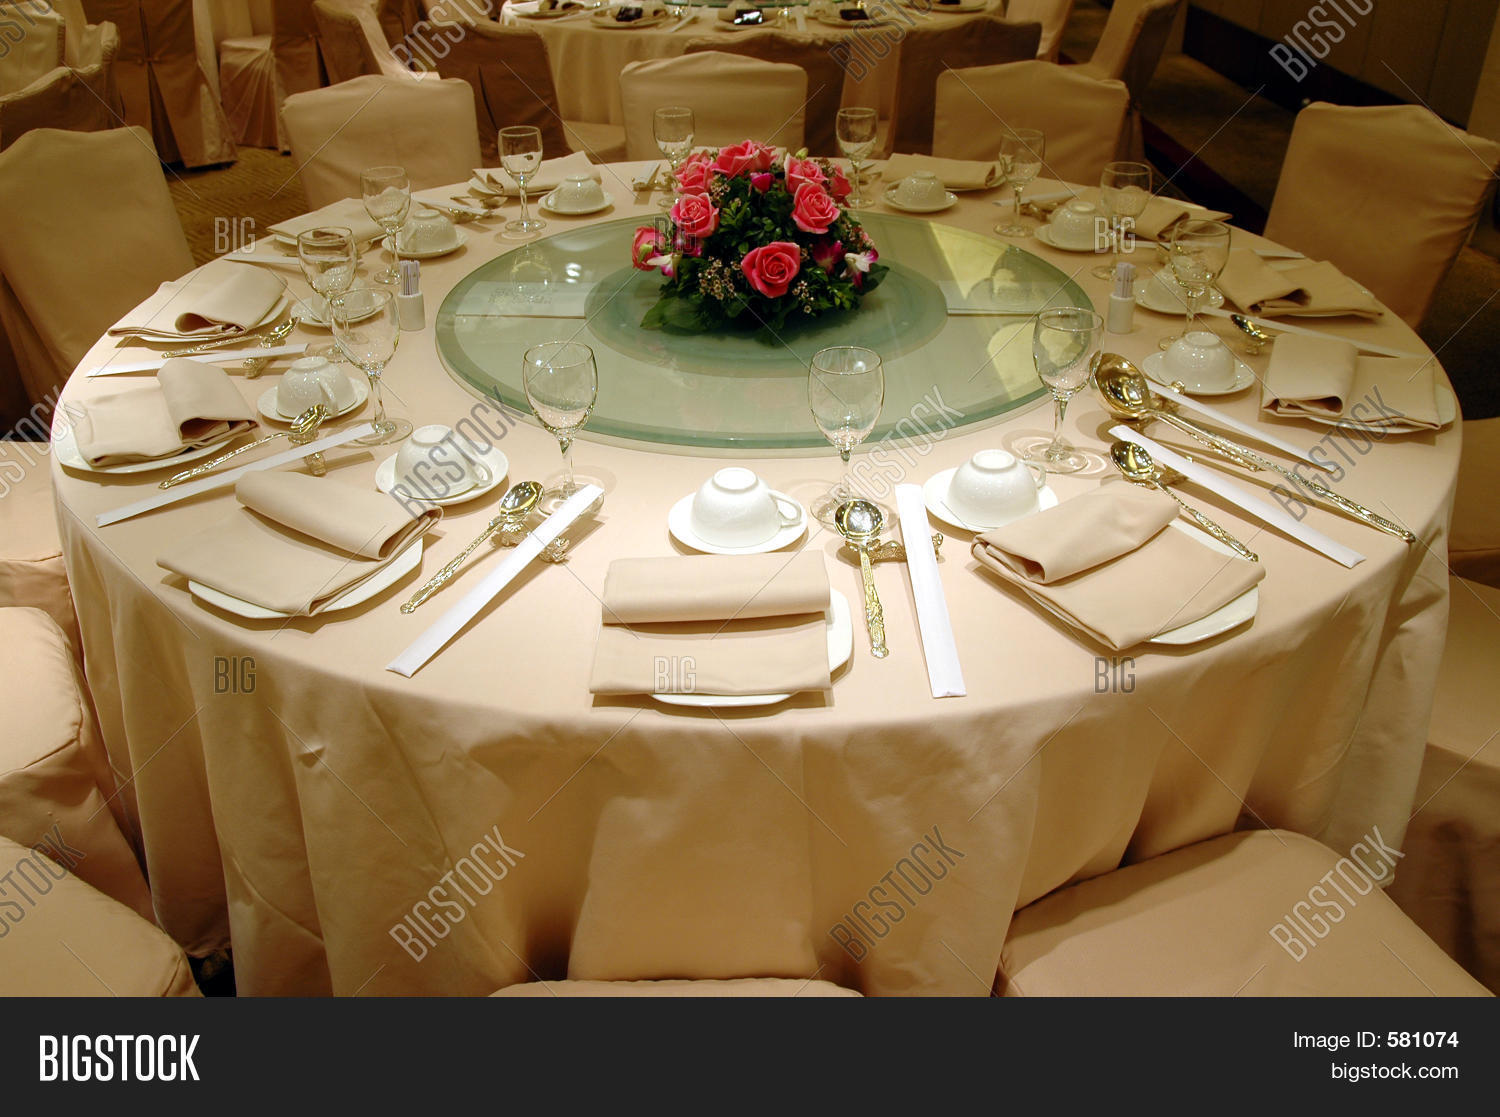 Exceptional Banquet Table Setting Part - 3: Wedding Banquet Table Setting